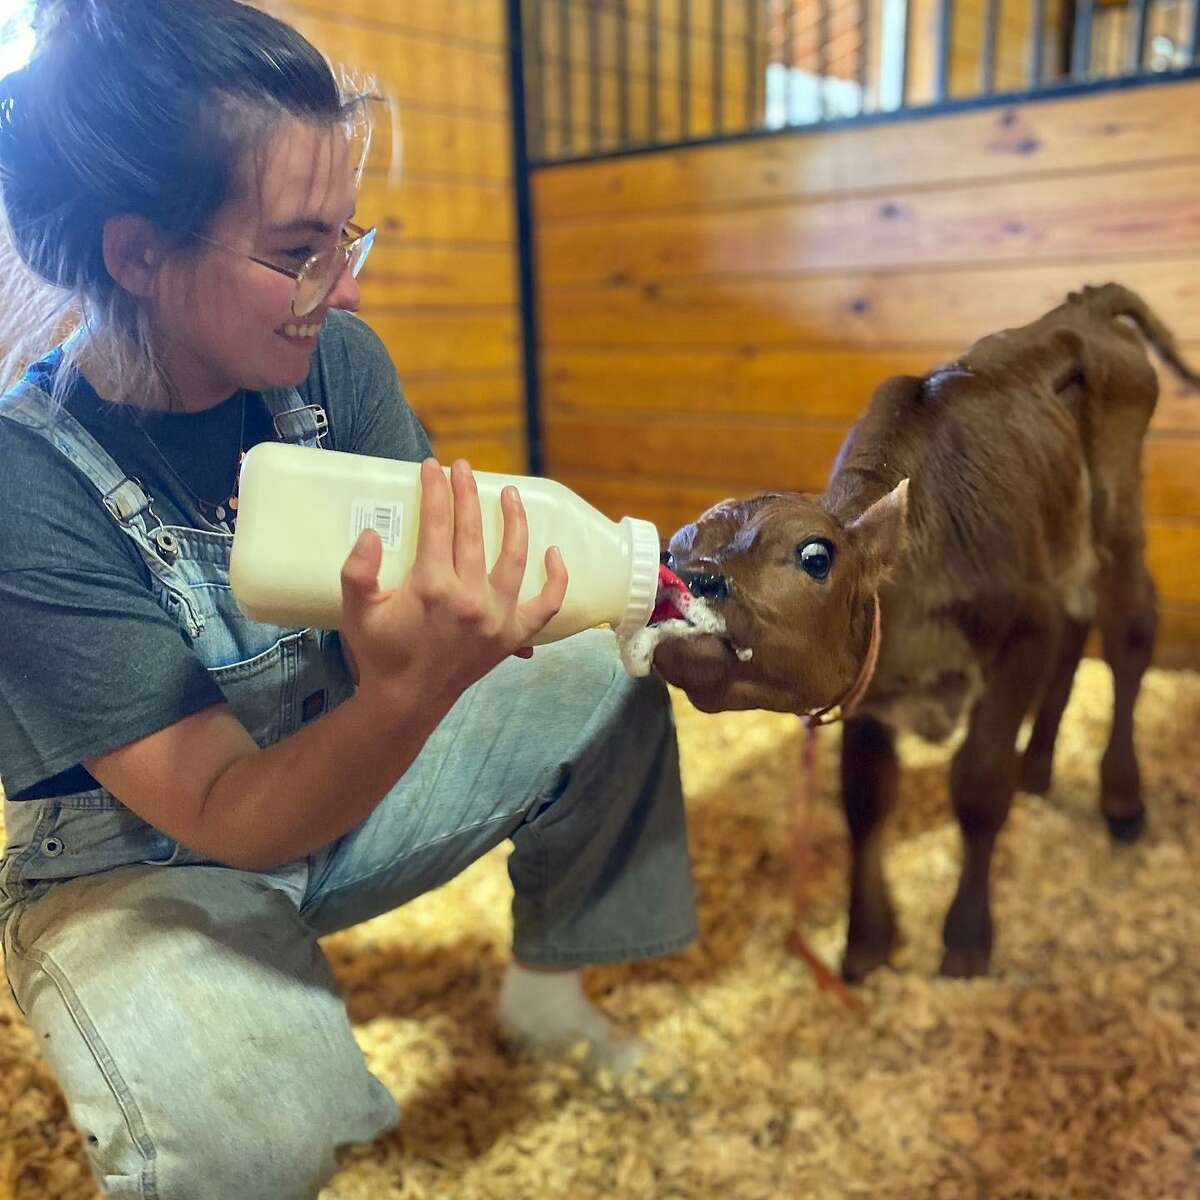 Tiffany Paltauf feeding one of her 17 rescued animals at the Sleepy Pig Farm and Animal Sanctuary. Paltauf is taking the organization's 17 rescue animals to a 10-acre farm in Granville, New York to have more space while dodging Connecticut price tags. She and her husband have been renting farmland for the animals but say it has become too costly. As the sanctuary moves to a new location, Paltauf created a GoFundMe to help the donation-dependent organization make necessary repairs to the new property. They have raised nearly $1,000 of their $50,000 goal.